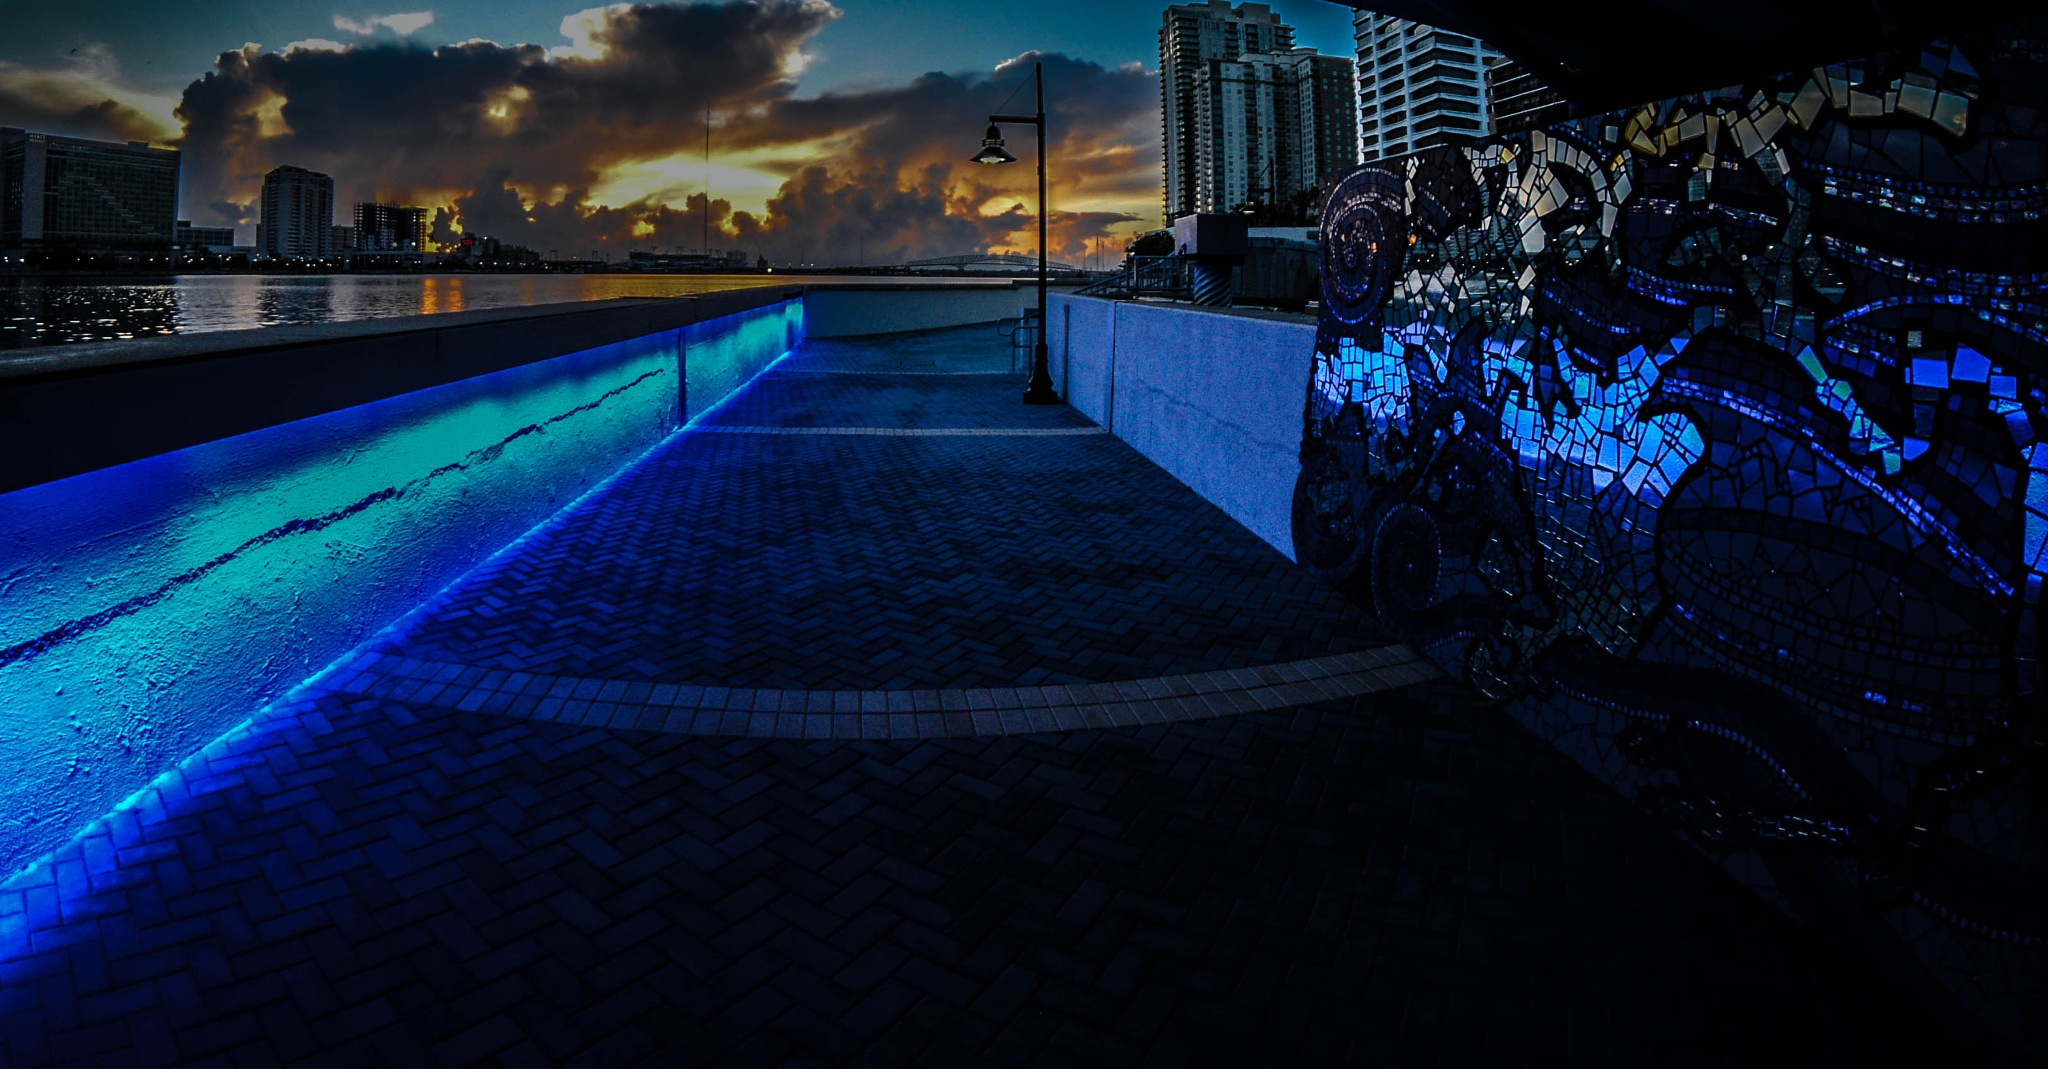 Sunrise and Blue by brian.carter.5661